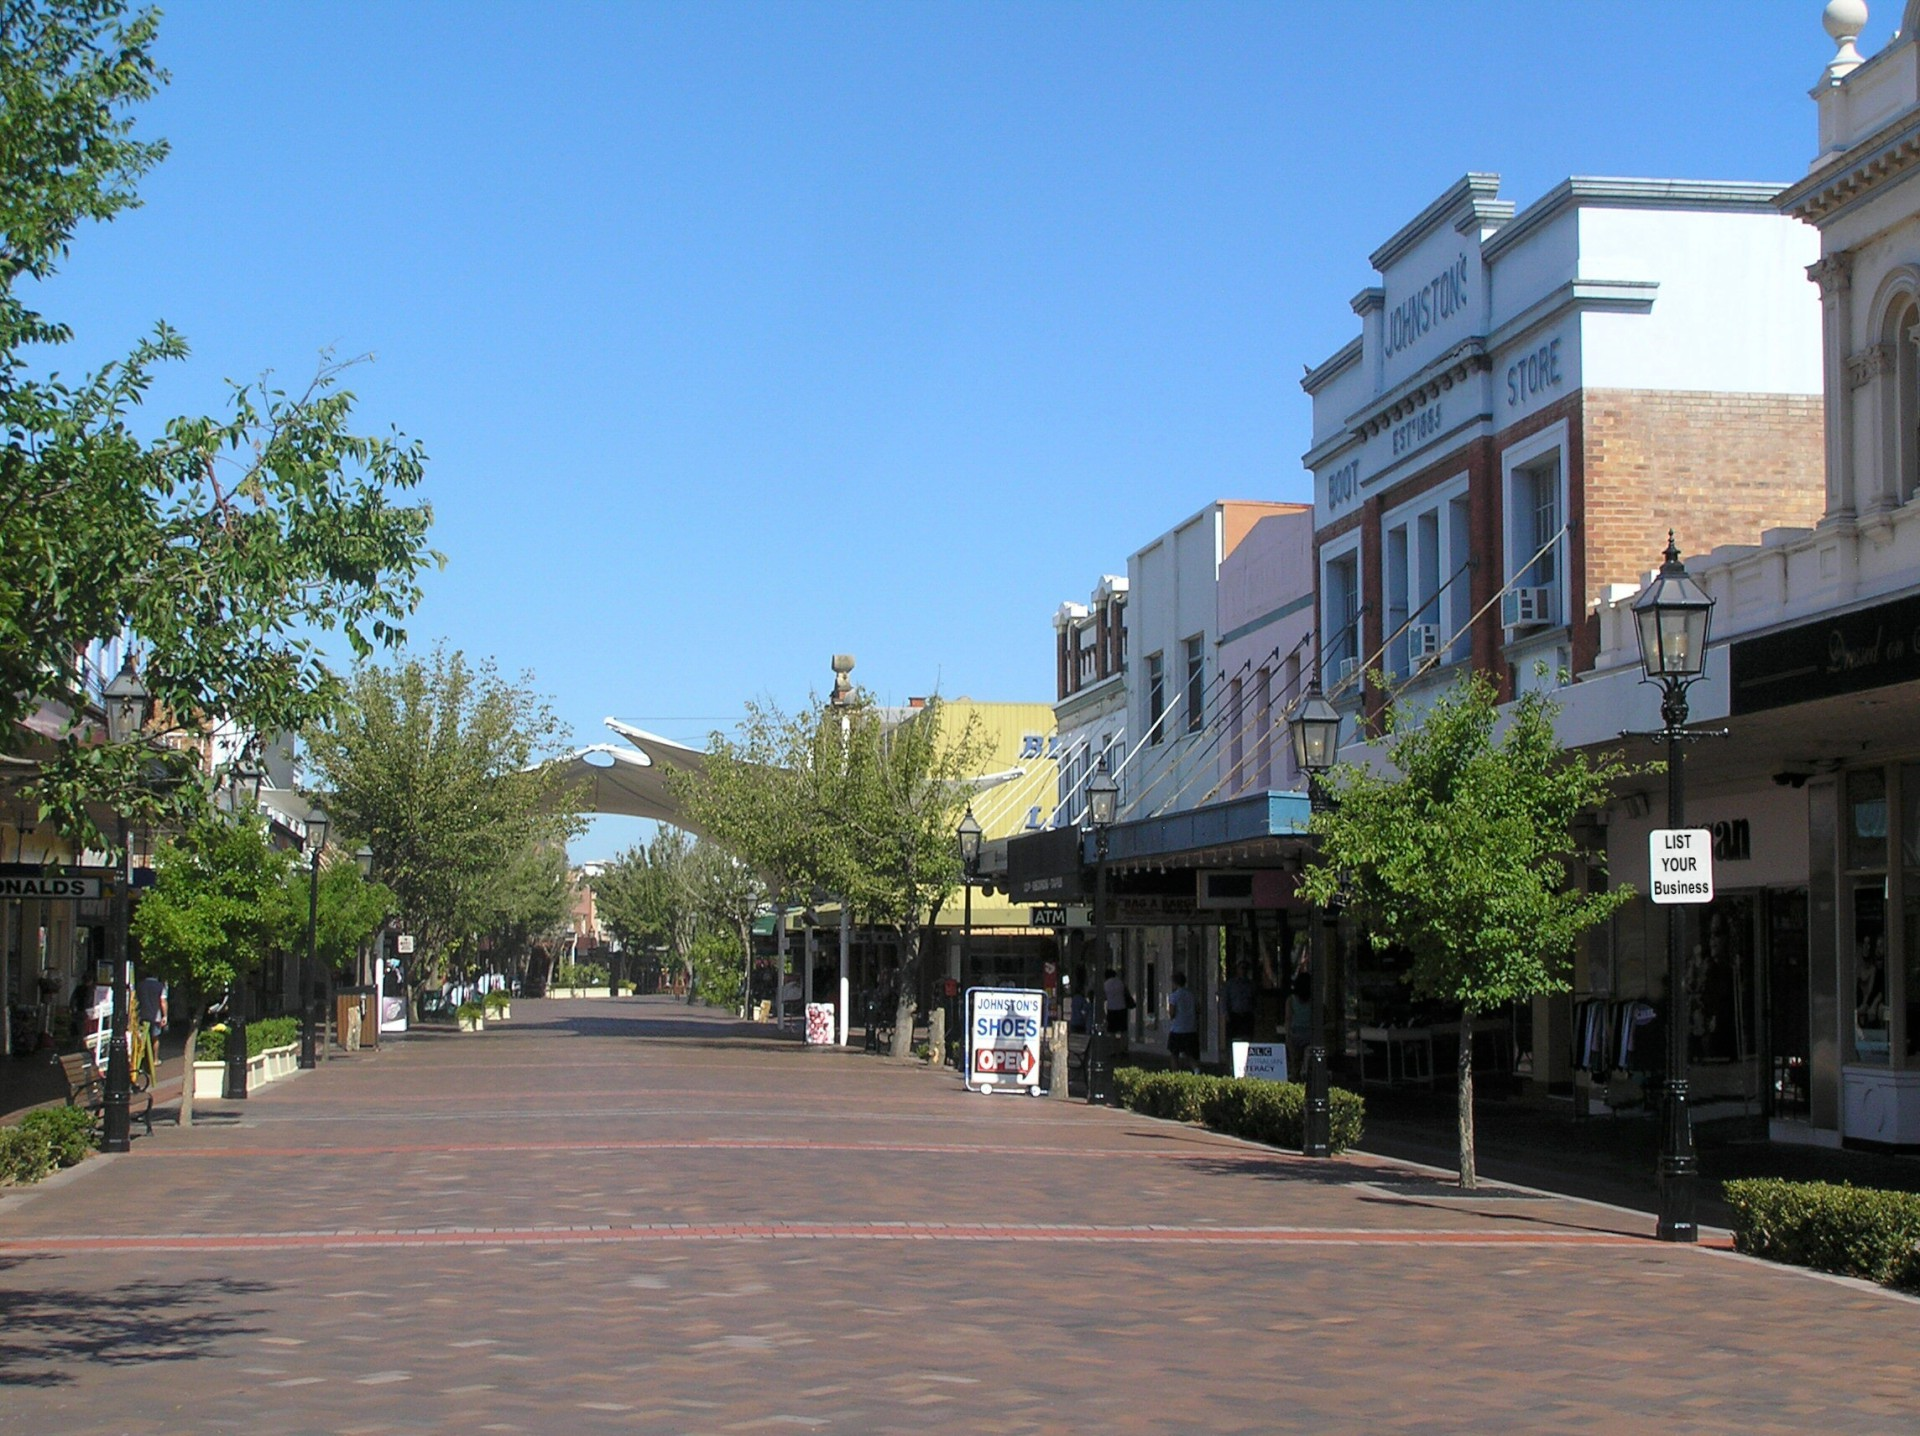 Maitland New South Wales